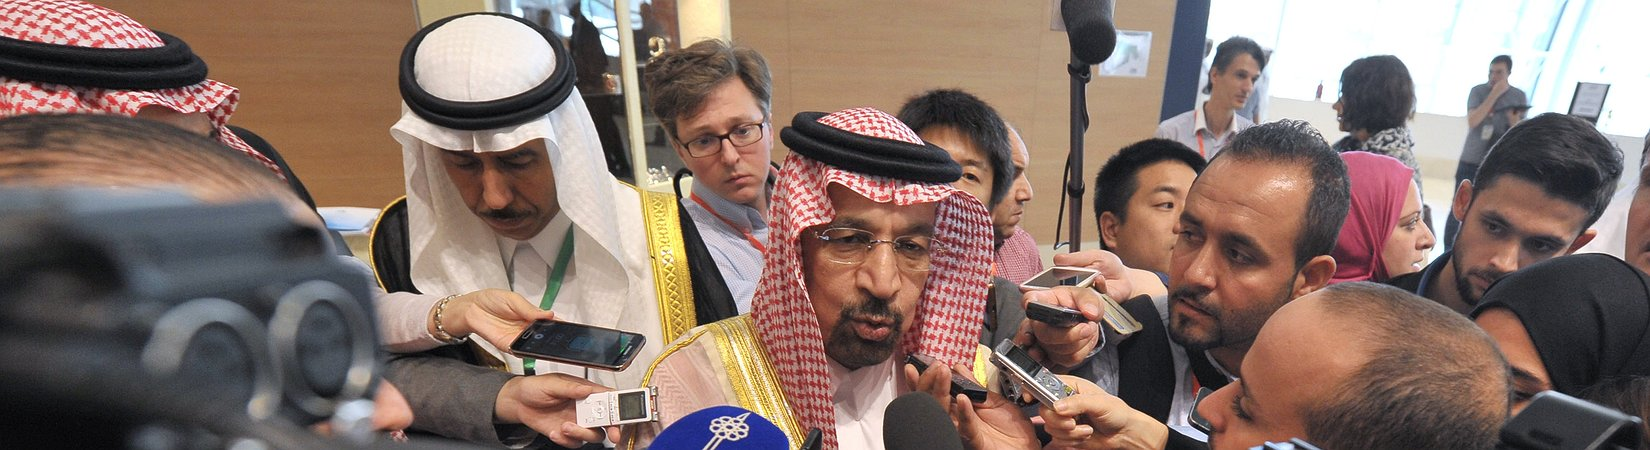 OPEC finally reaches an agreement on oil output